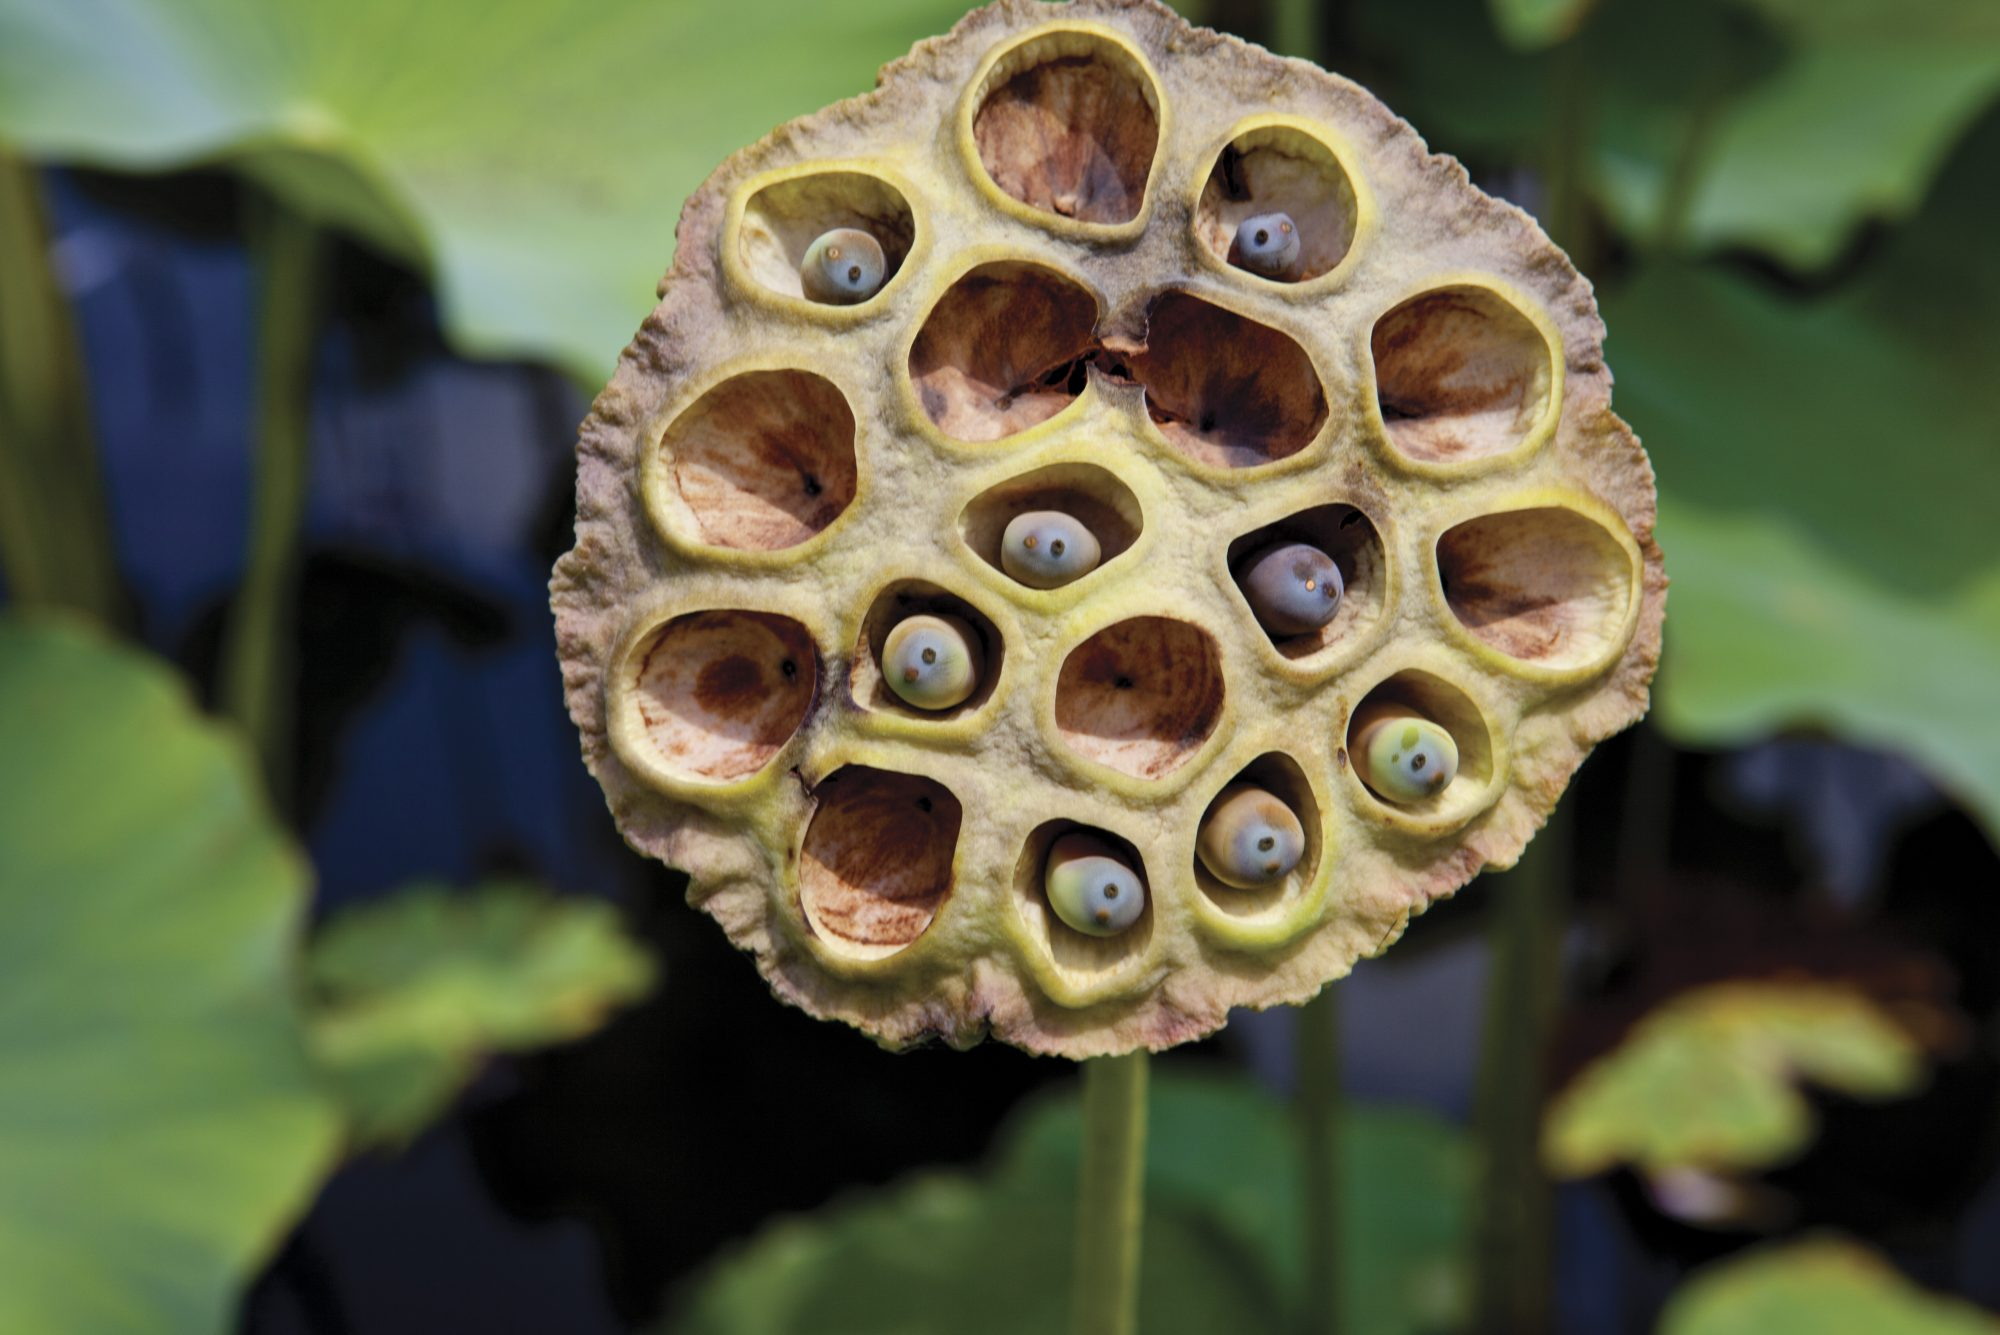 lotus-head-hole-phobia